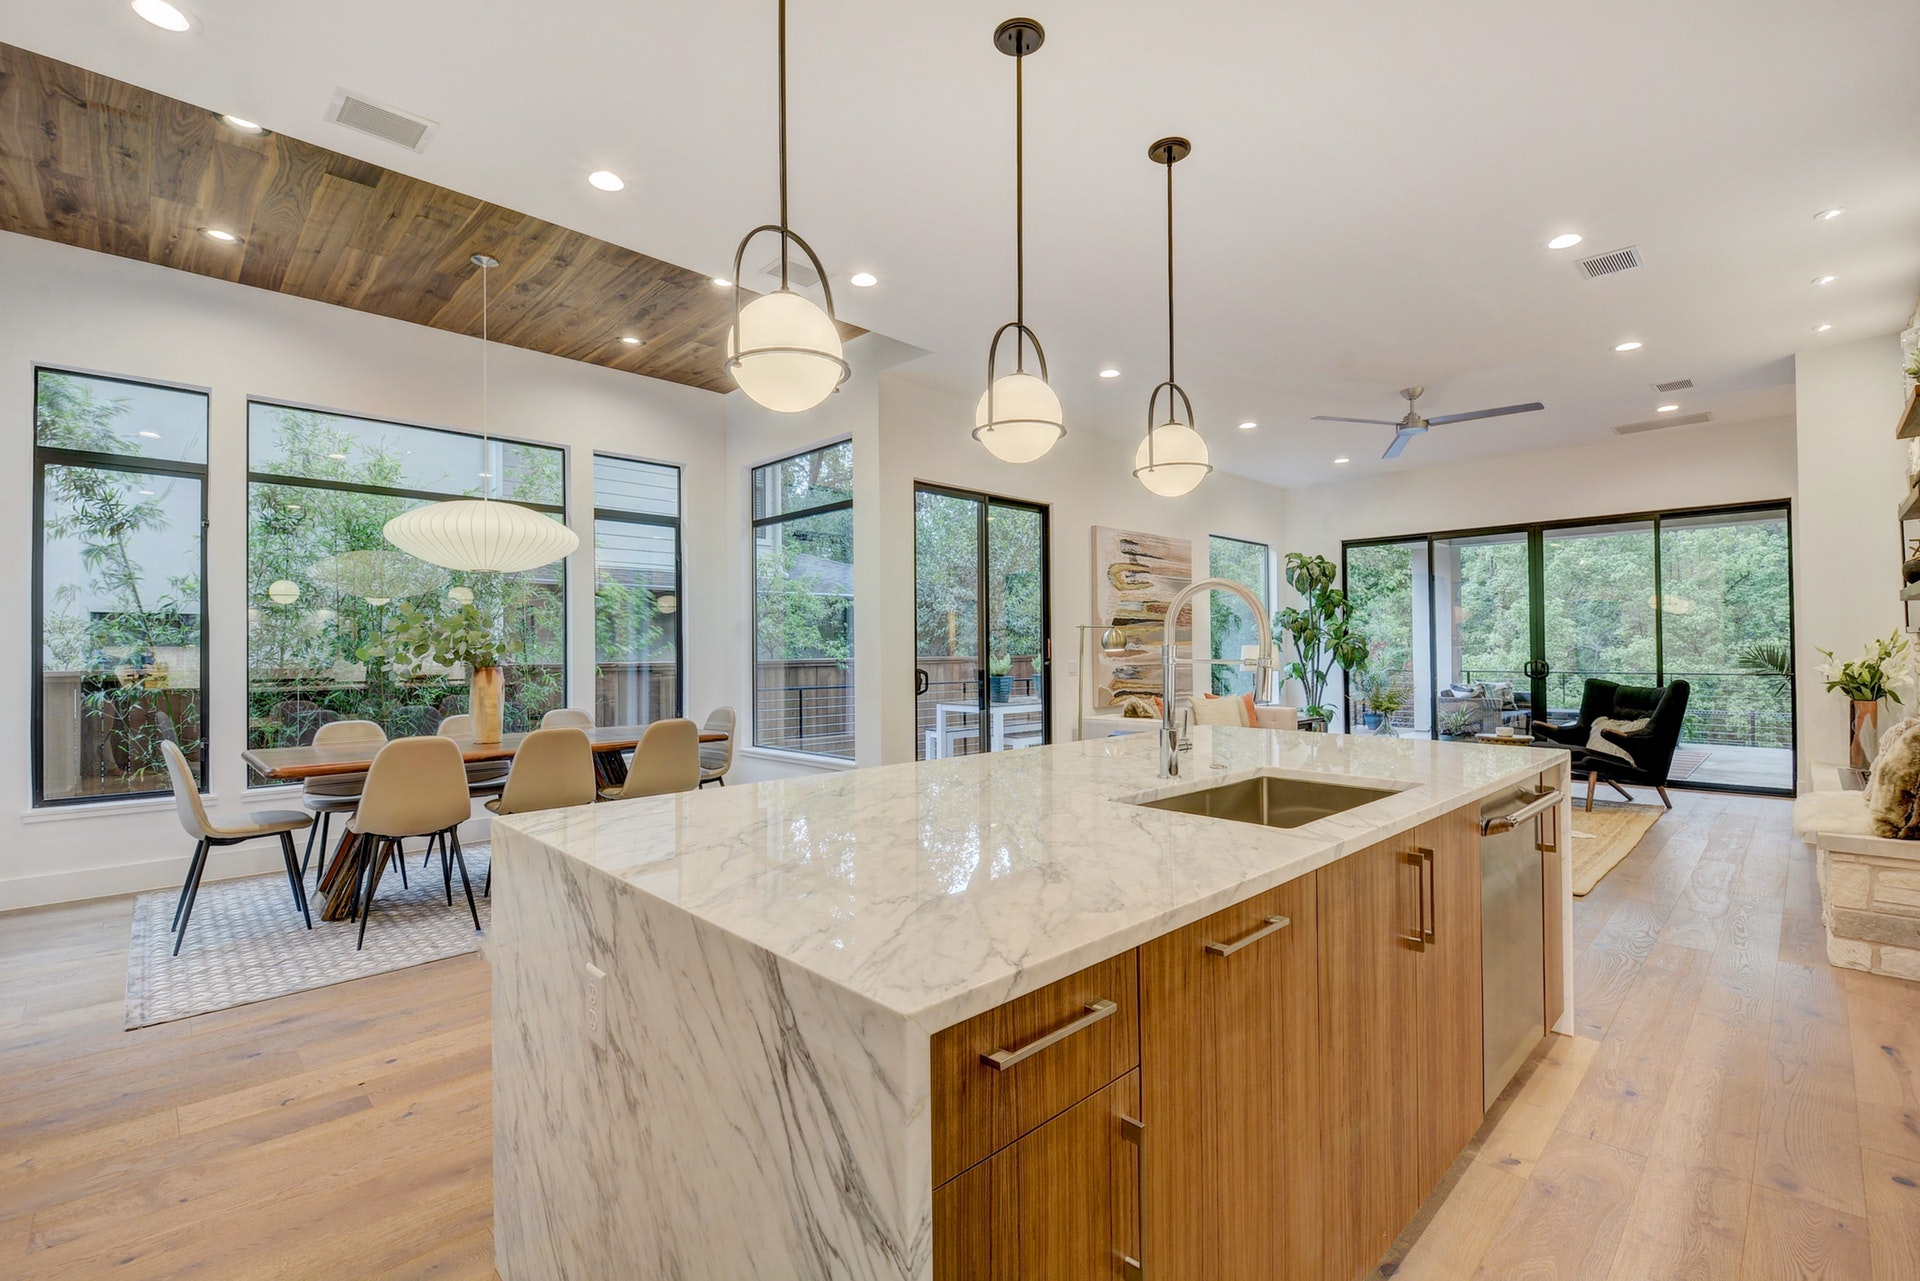 Premium custom kitchen looking into great room and dining room in Bouldin new home Austin Texas 78704